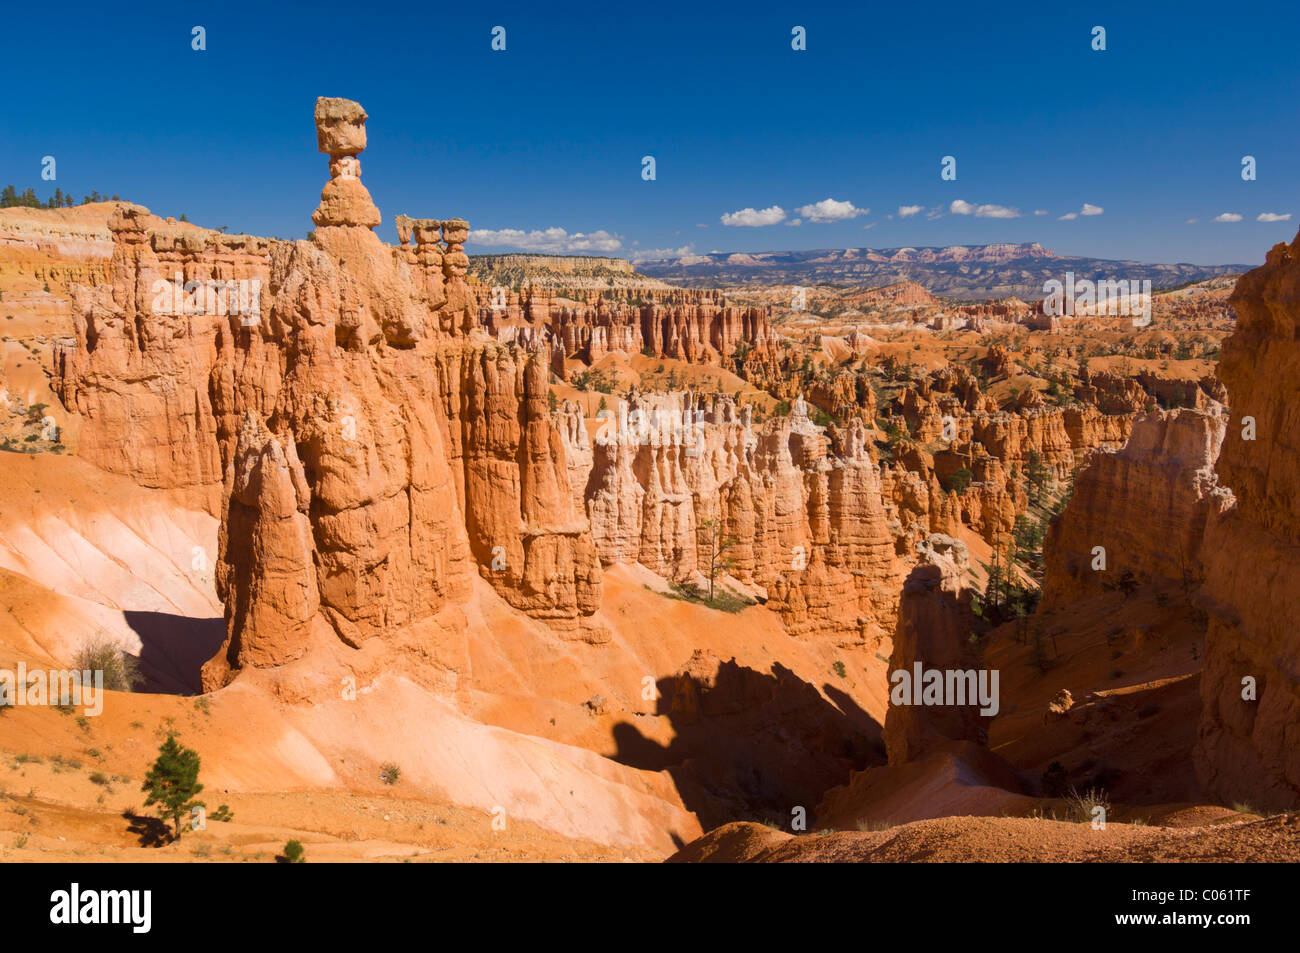 Thor's hammer and sandstone hoodoo's in Bryce canyon national park Utah United States of America USA - Stock Image